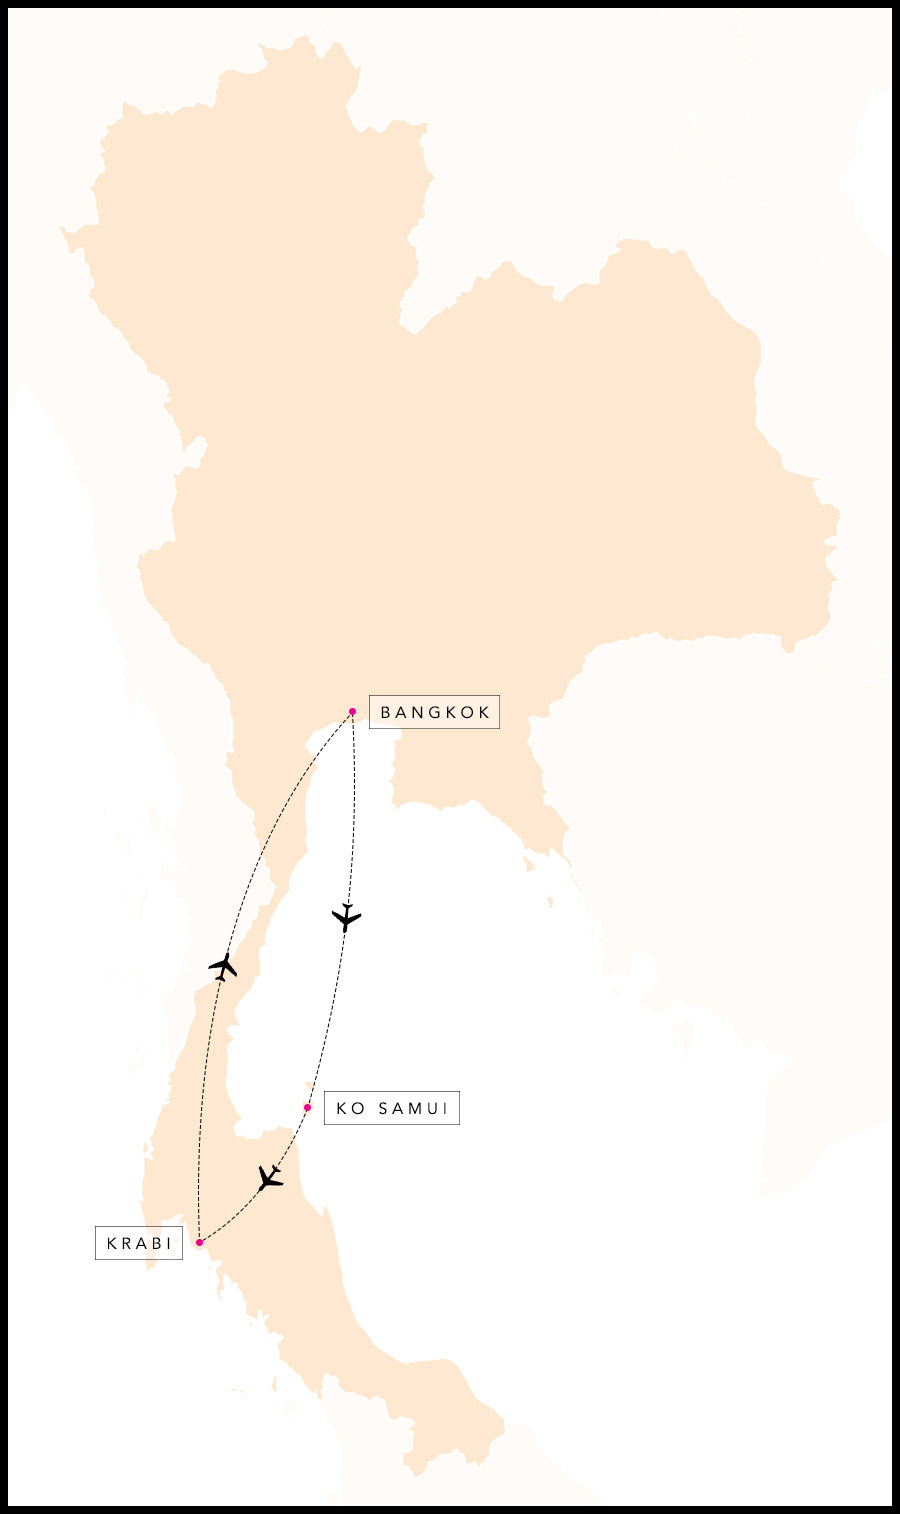 Alex & Madie's travel route in Thailand.